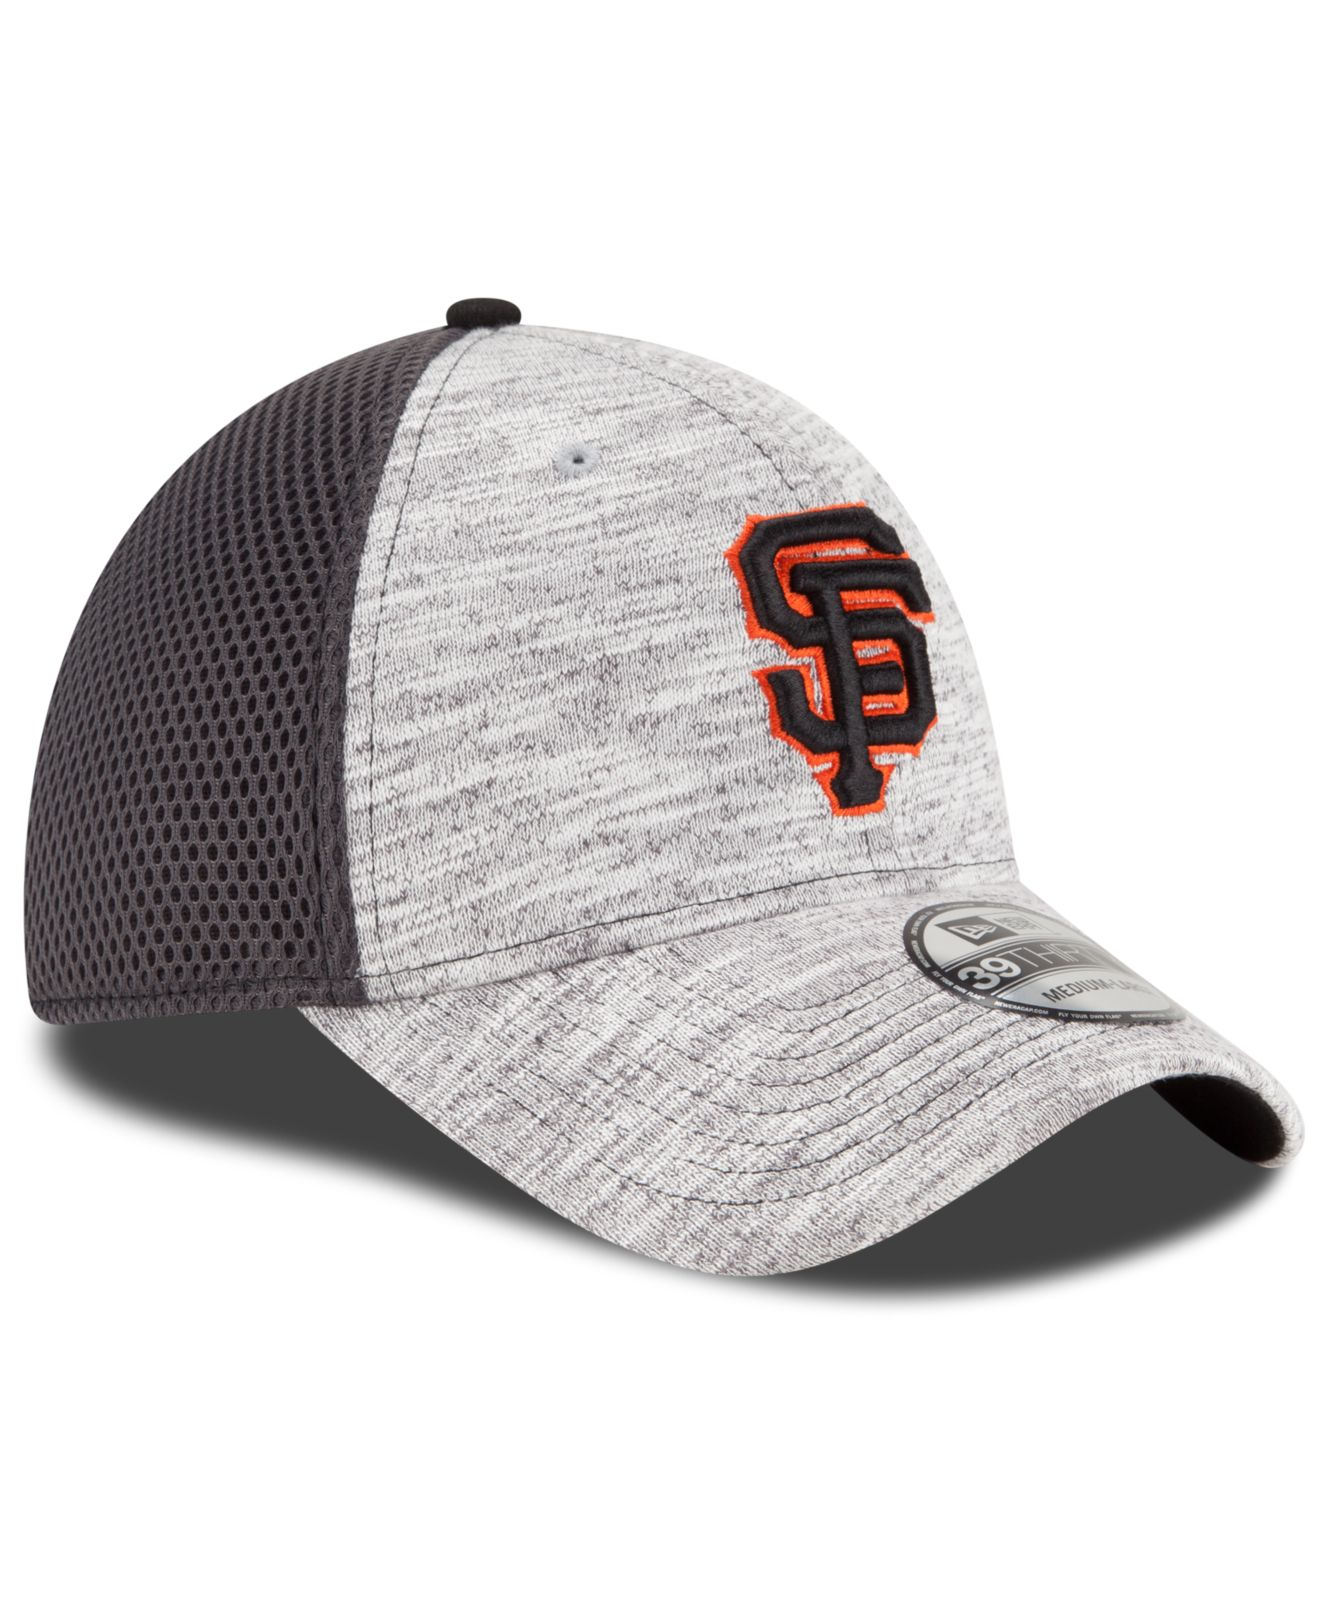 buy popular a7e19 ab2b7 ... new era mlb hooge neo 39thirty cap lids 21160 208b6  get lyst ktz san  francisco giants clubhouse 39thirty cap in gray for men a330f 261af